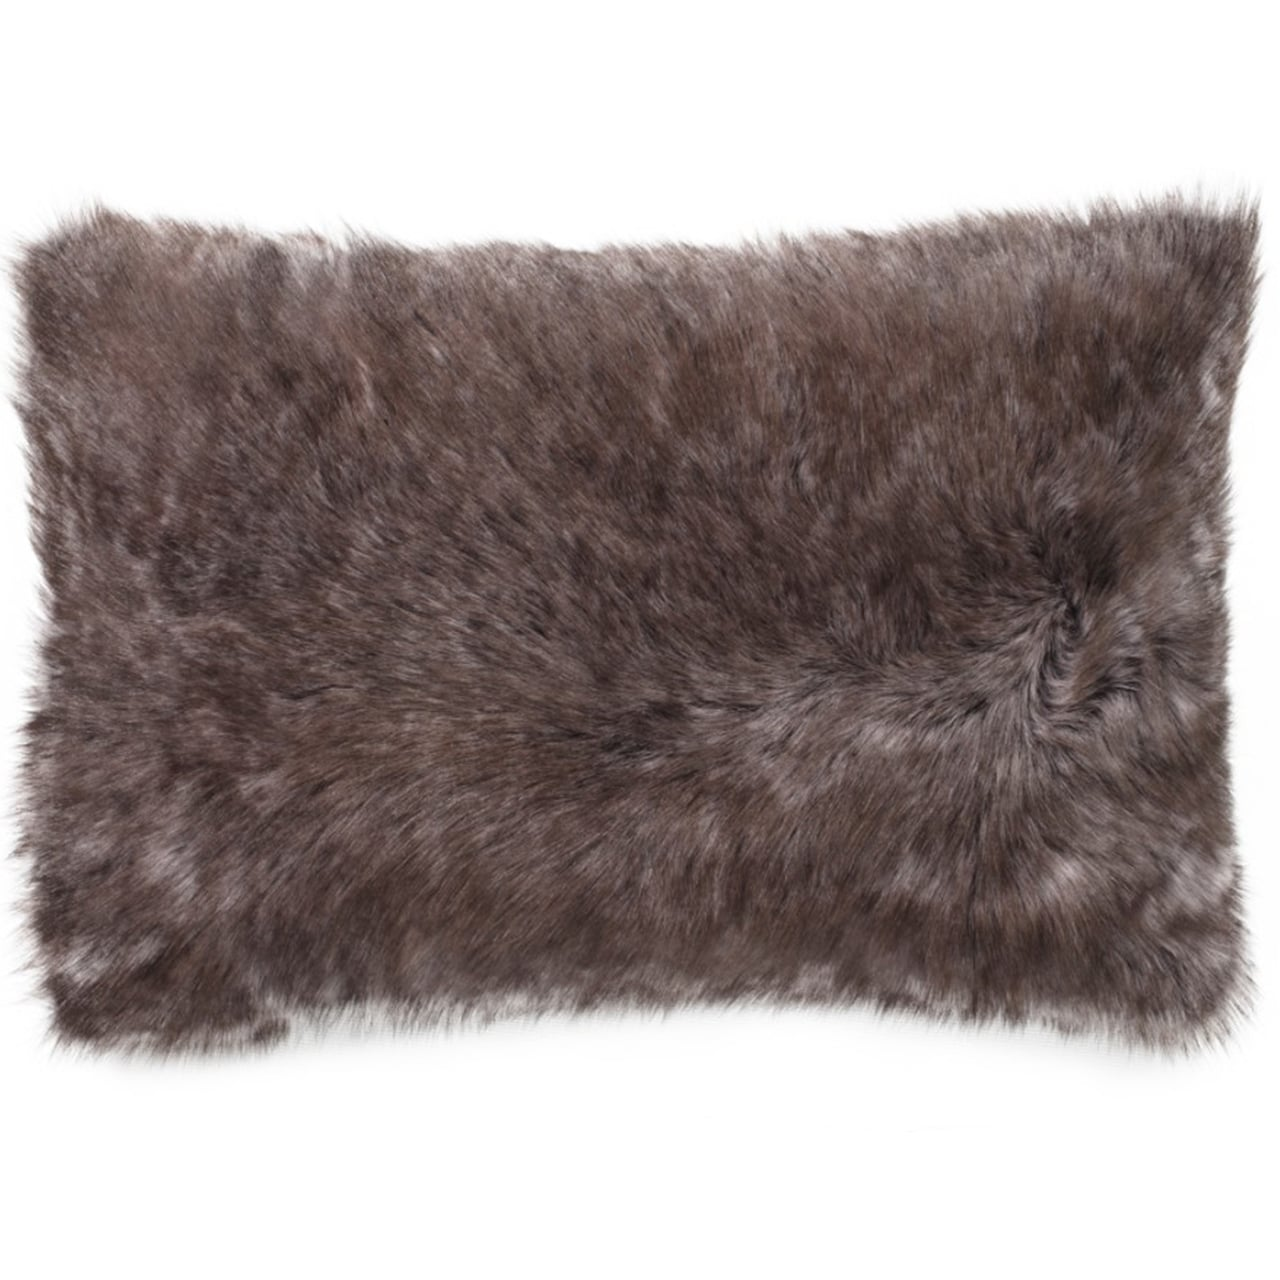 NEW-Shearling Pillow- Sable- 35x55cm (SPSABTO3555) - ANVOGG FEEL SHEARLING | ANVOGG